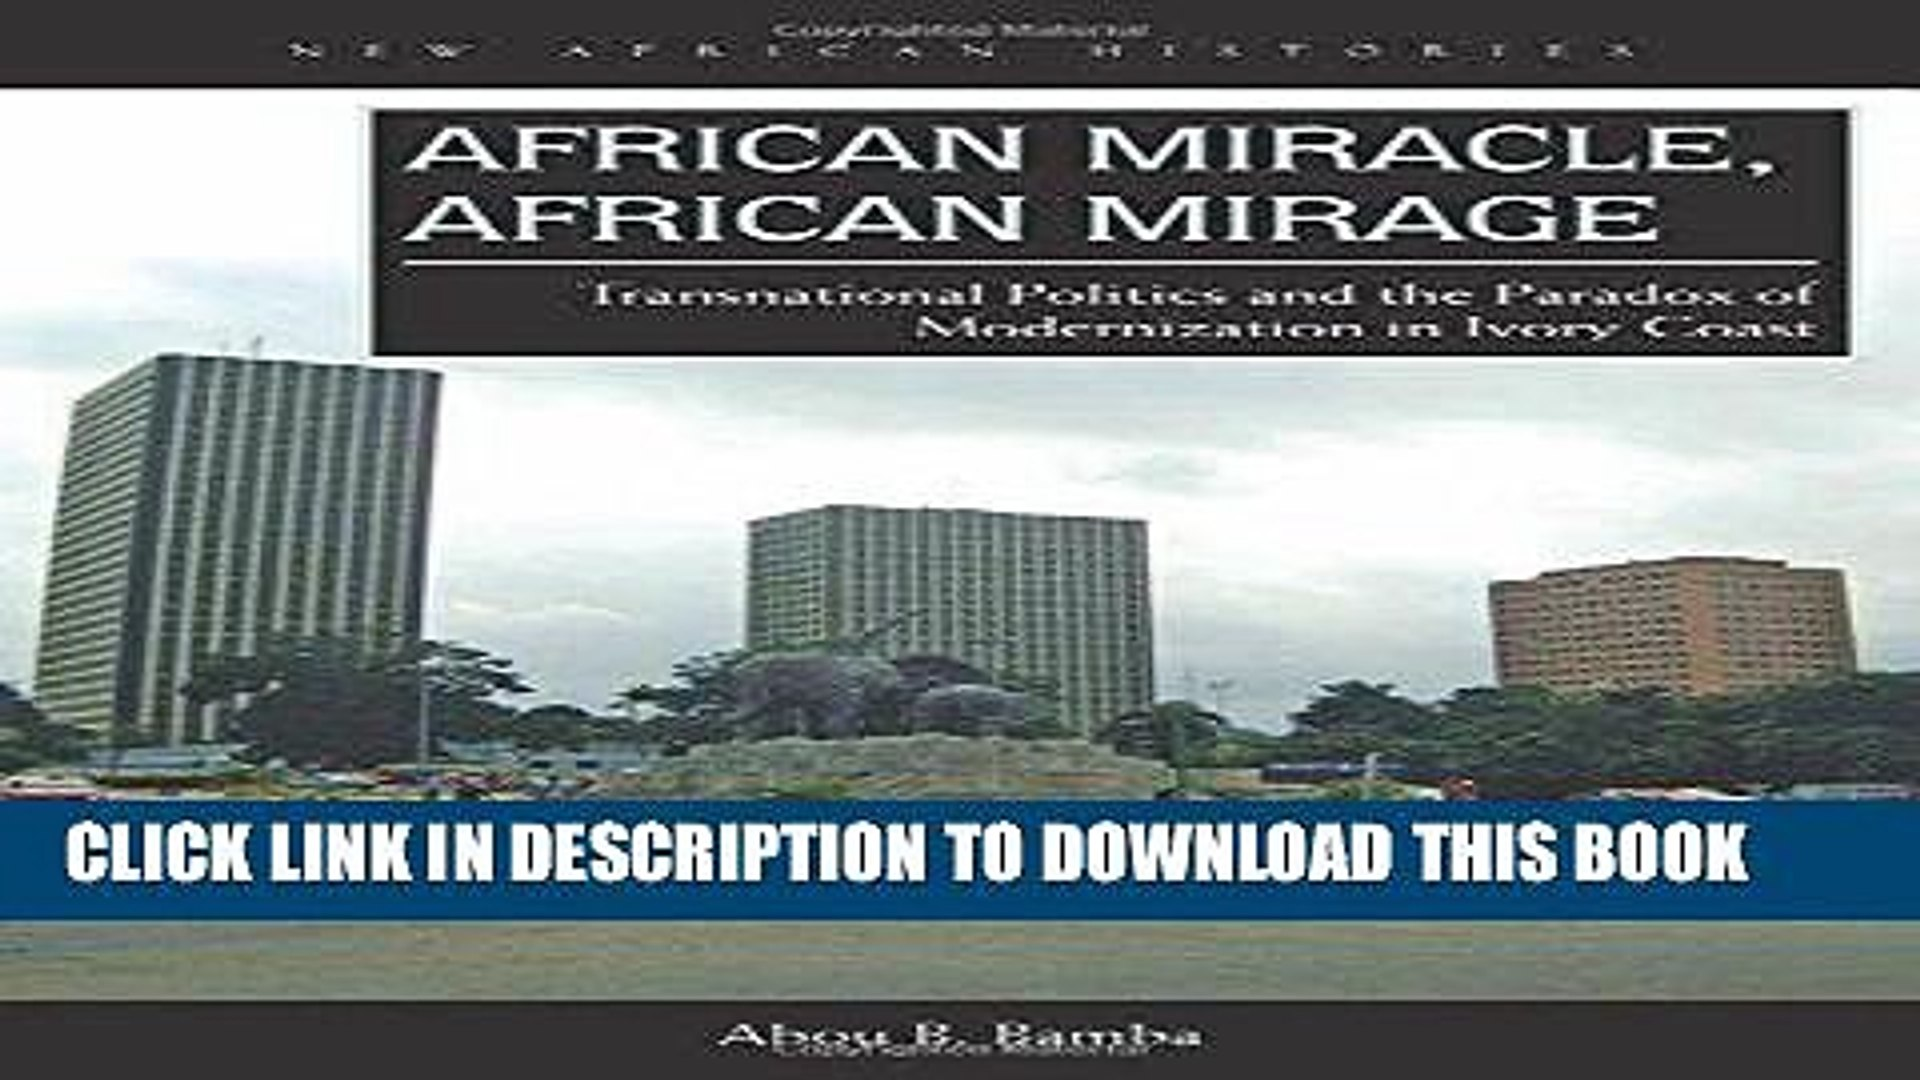 Read Now African Miracle, African Mirage: Transnational Politics and the Paradox of Modernization